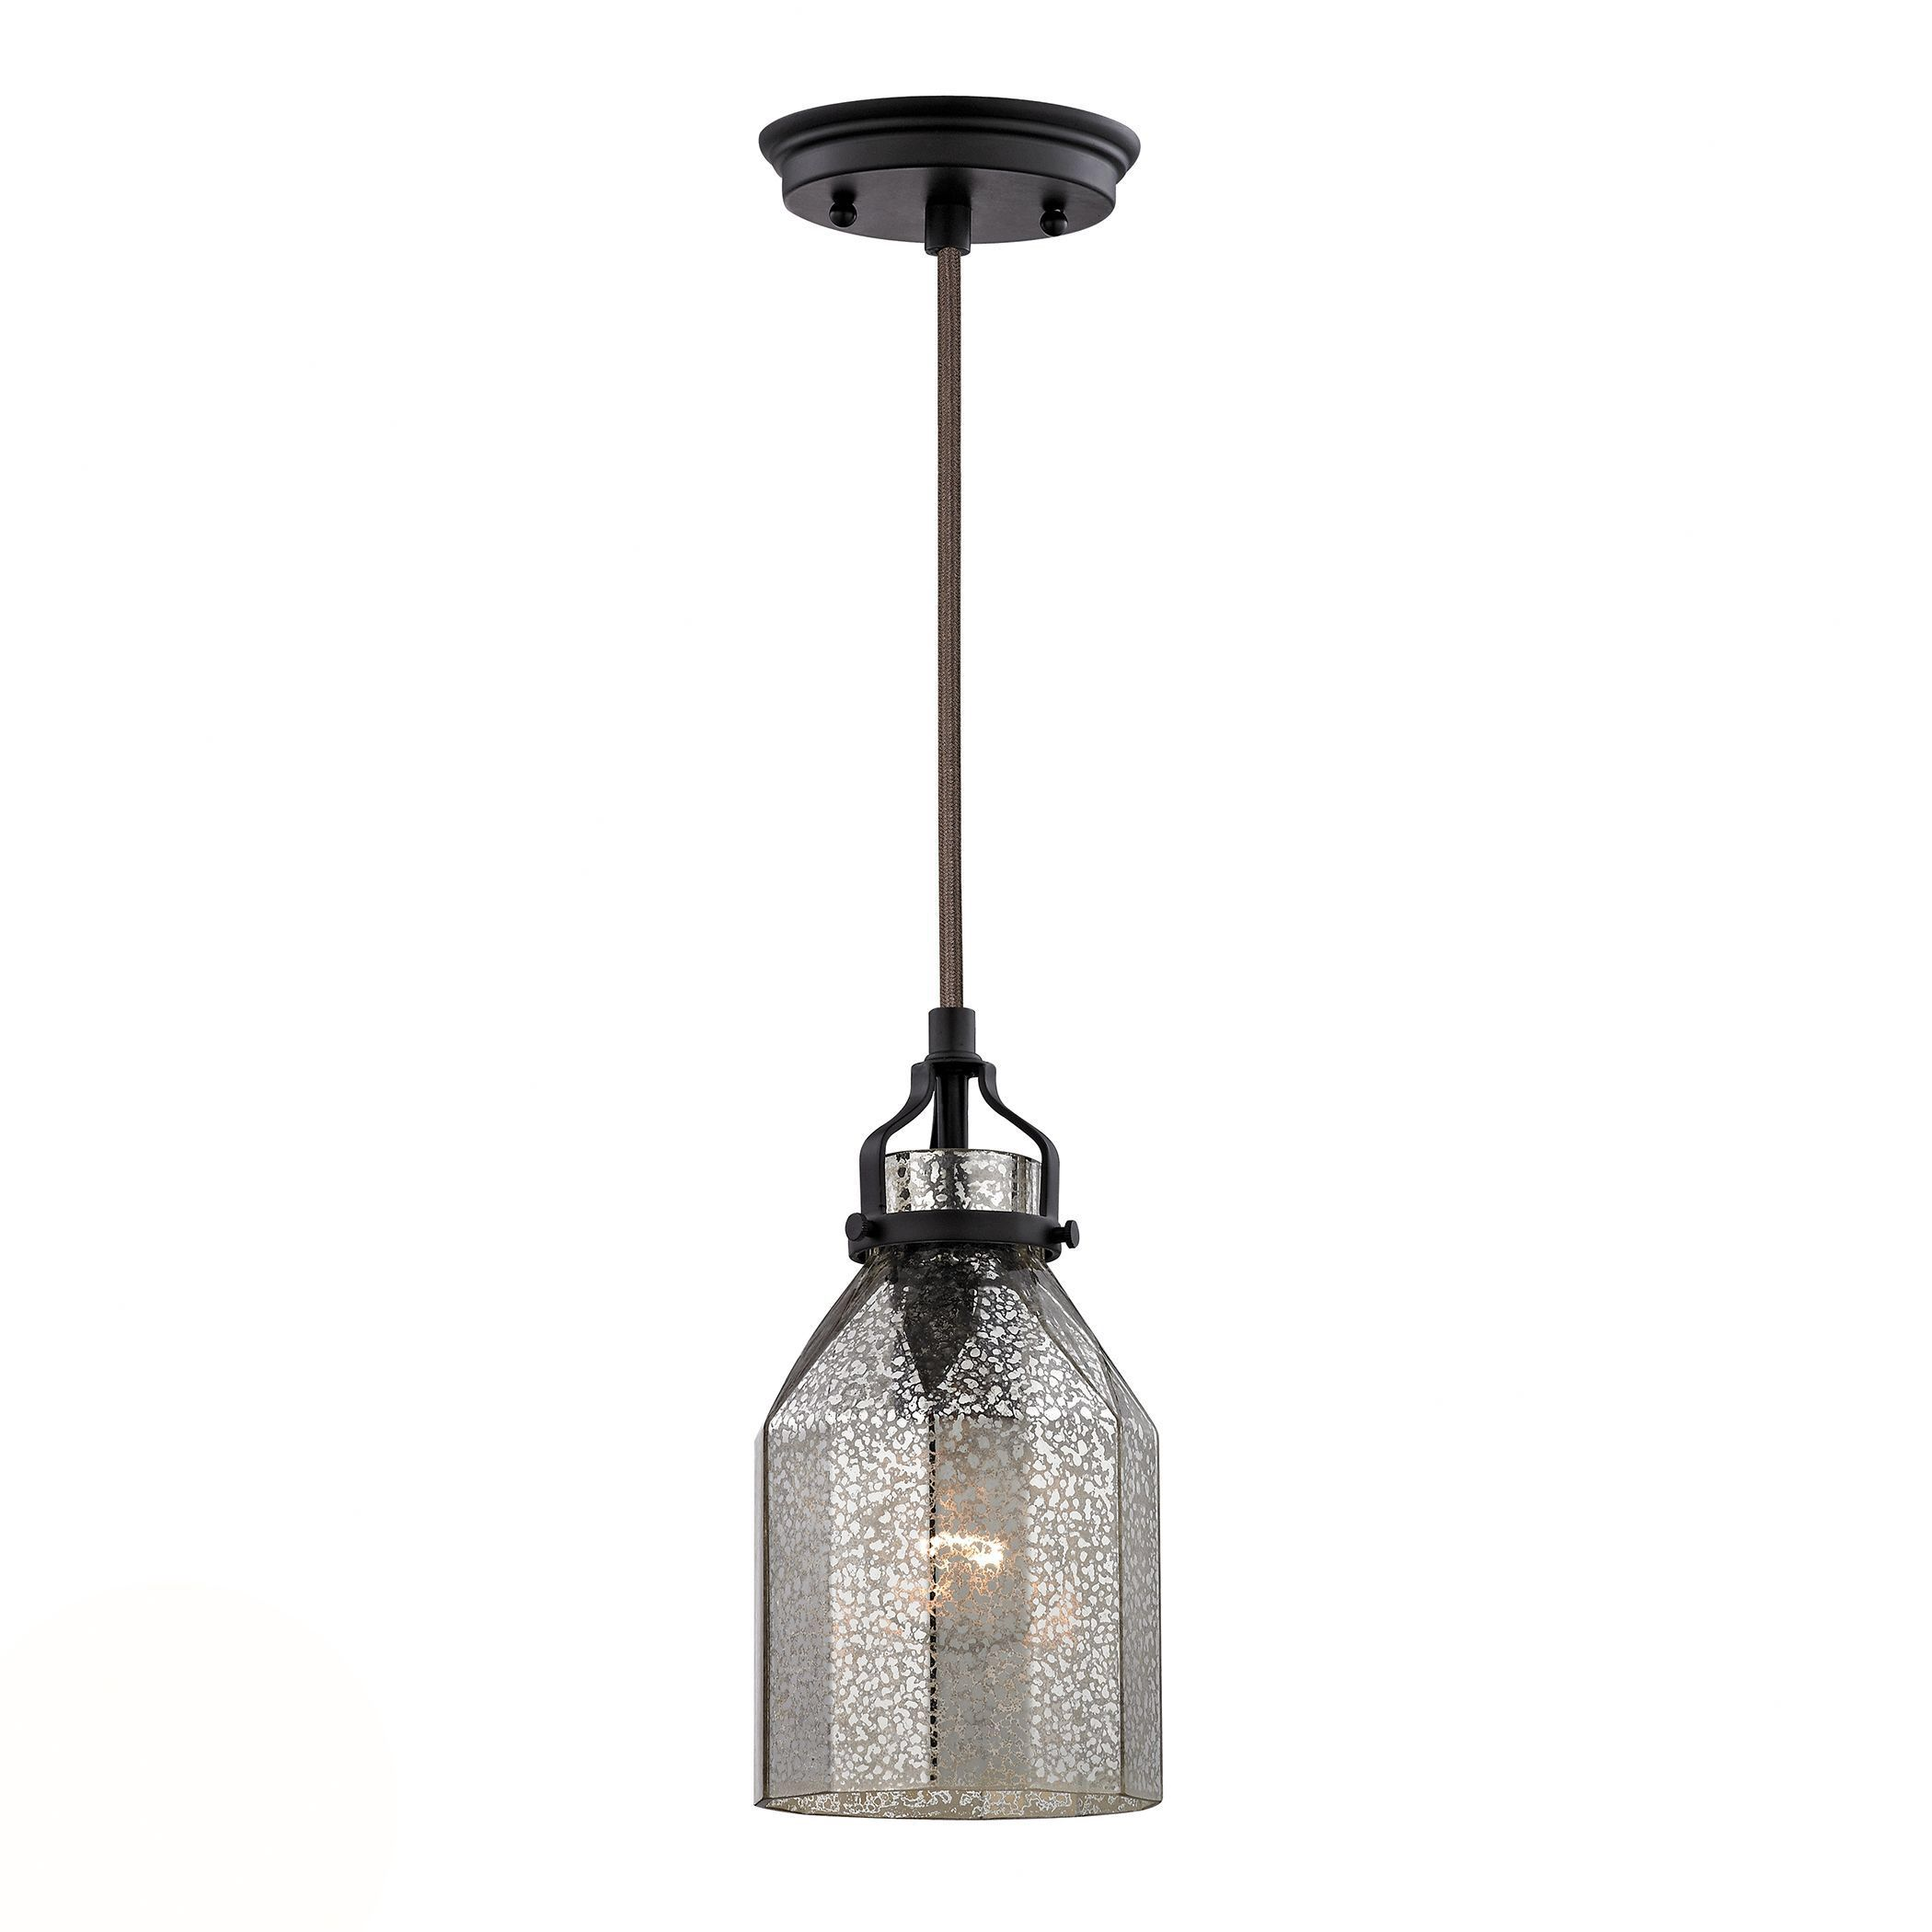 glass finish mercury kit oiled pendant fixtures lamps light shown ideas lighting in lowes bronze and for conversion